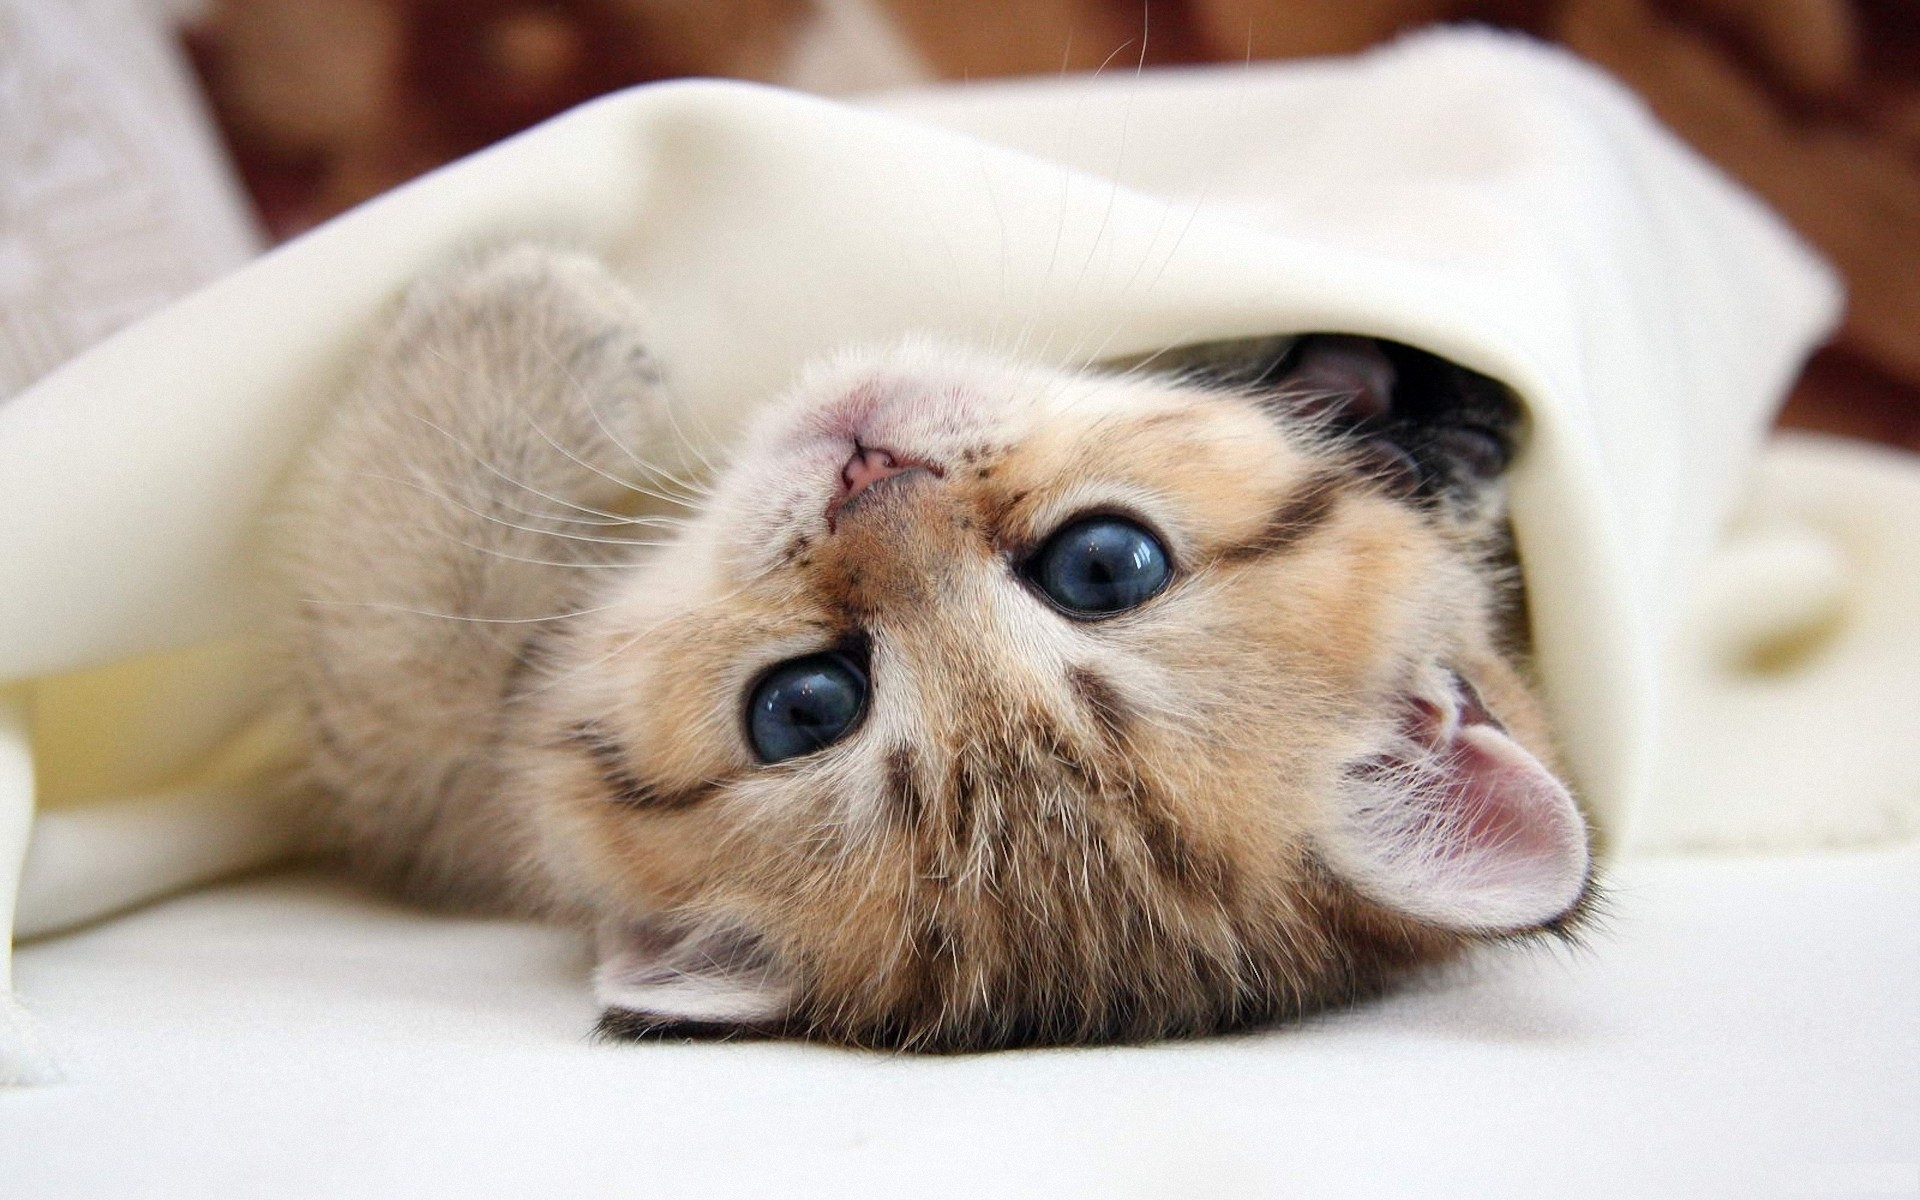 Kitten under a blanket, photo wallpaper high resolution 1920x1080